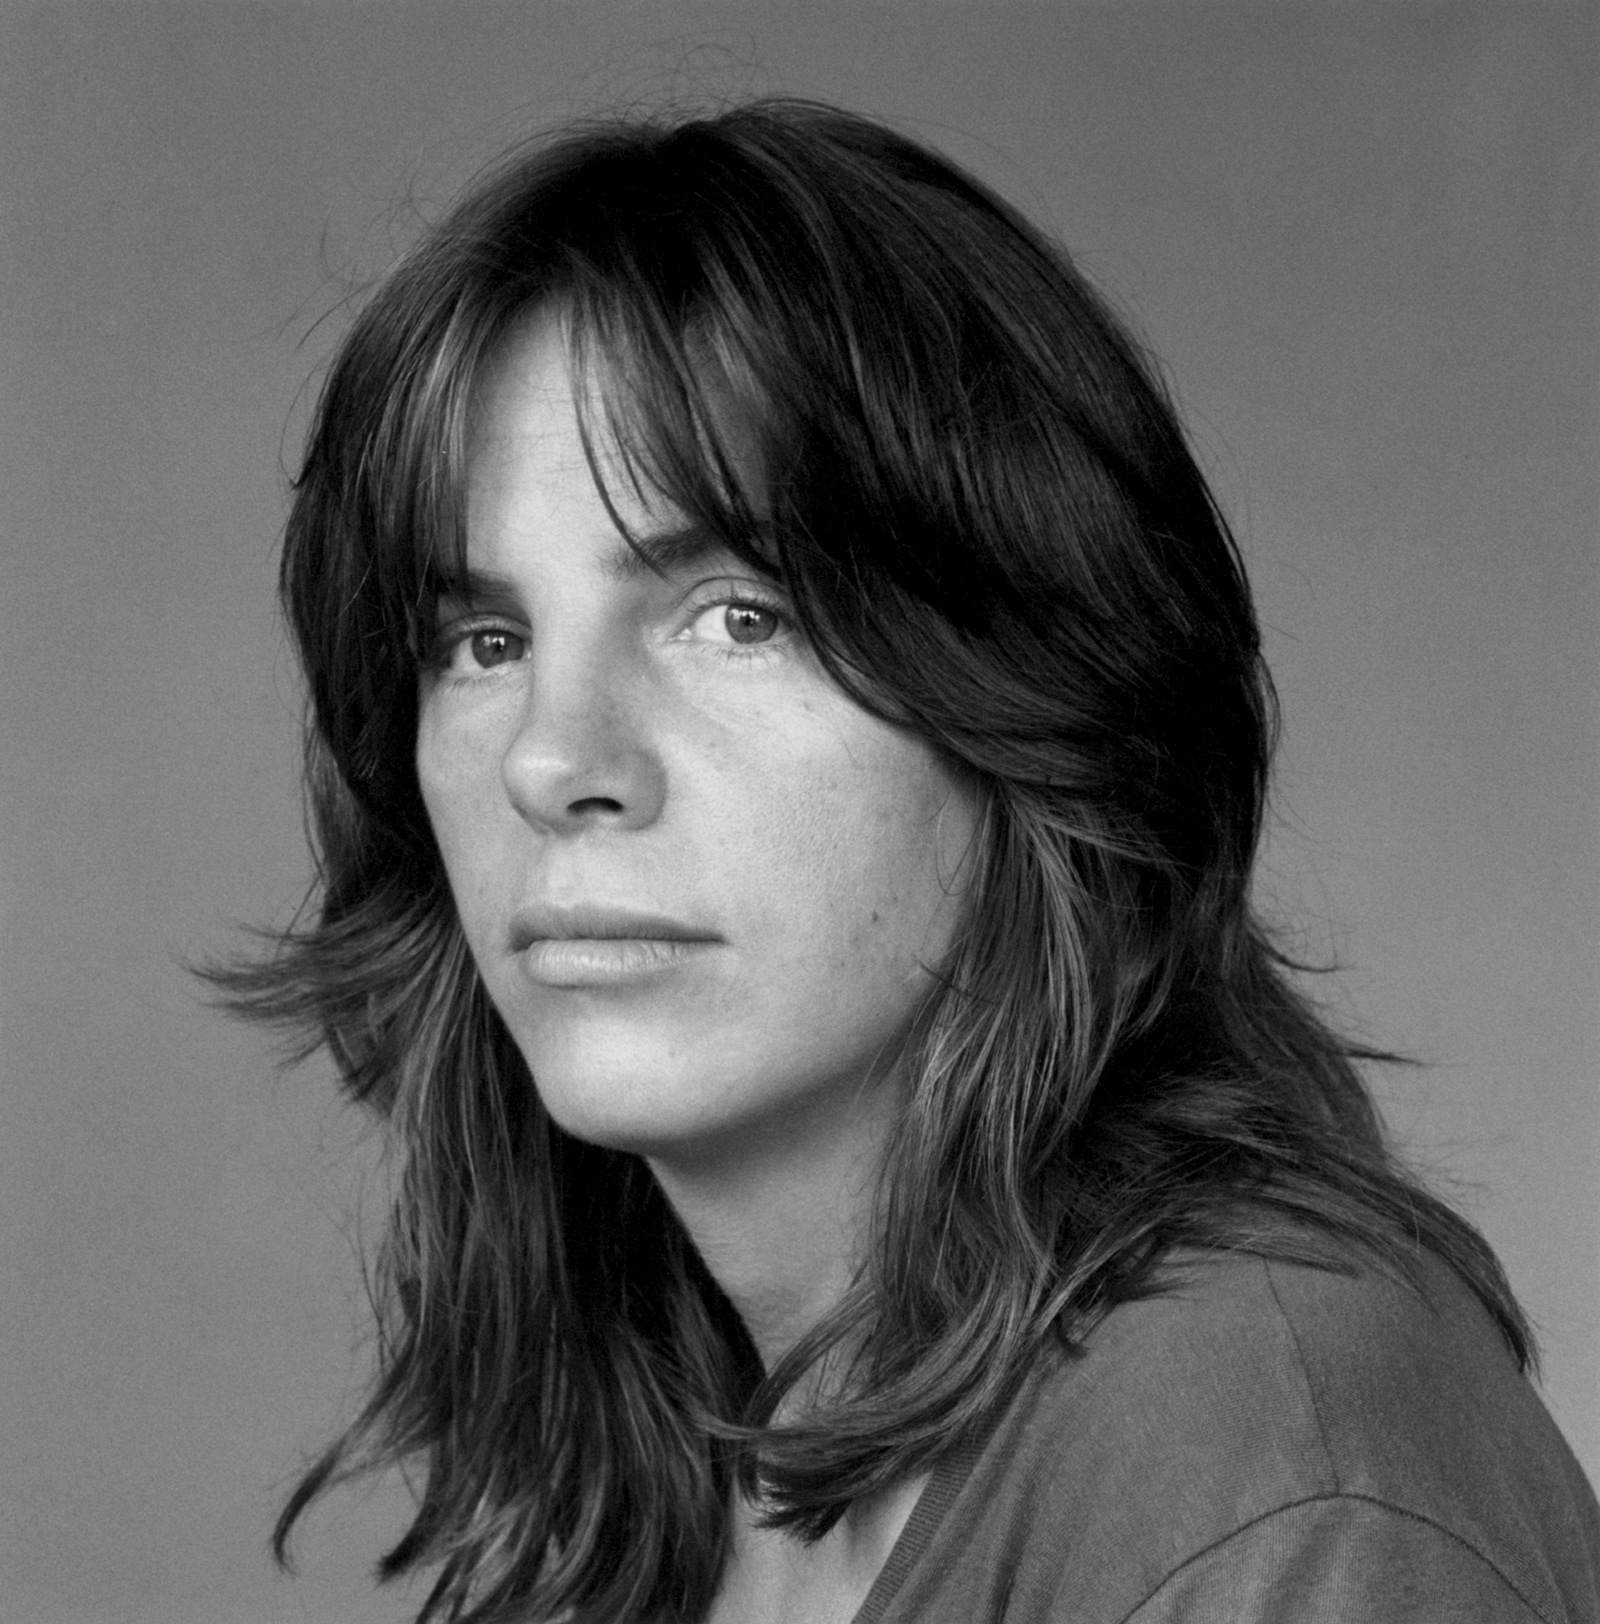 Eileen Myles, 1980; photograph by Robert Mapplethorpe, from the cover of Chelsea Girls